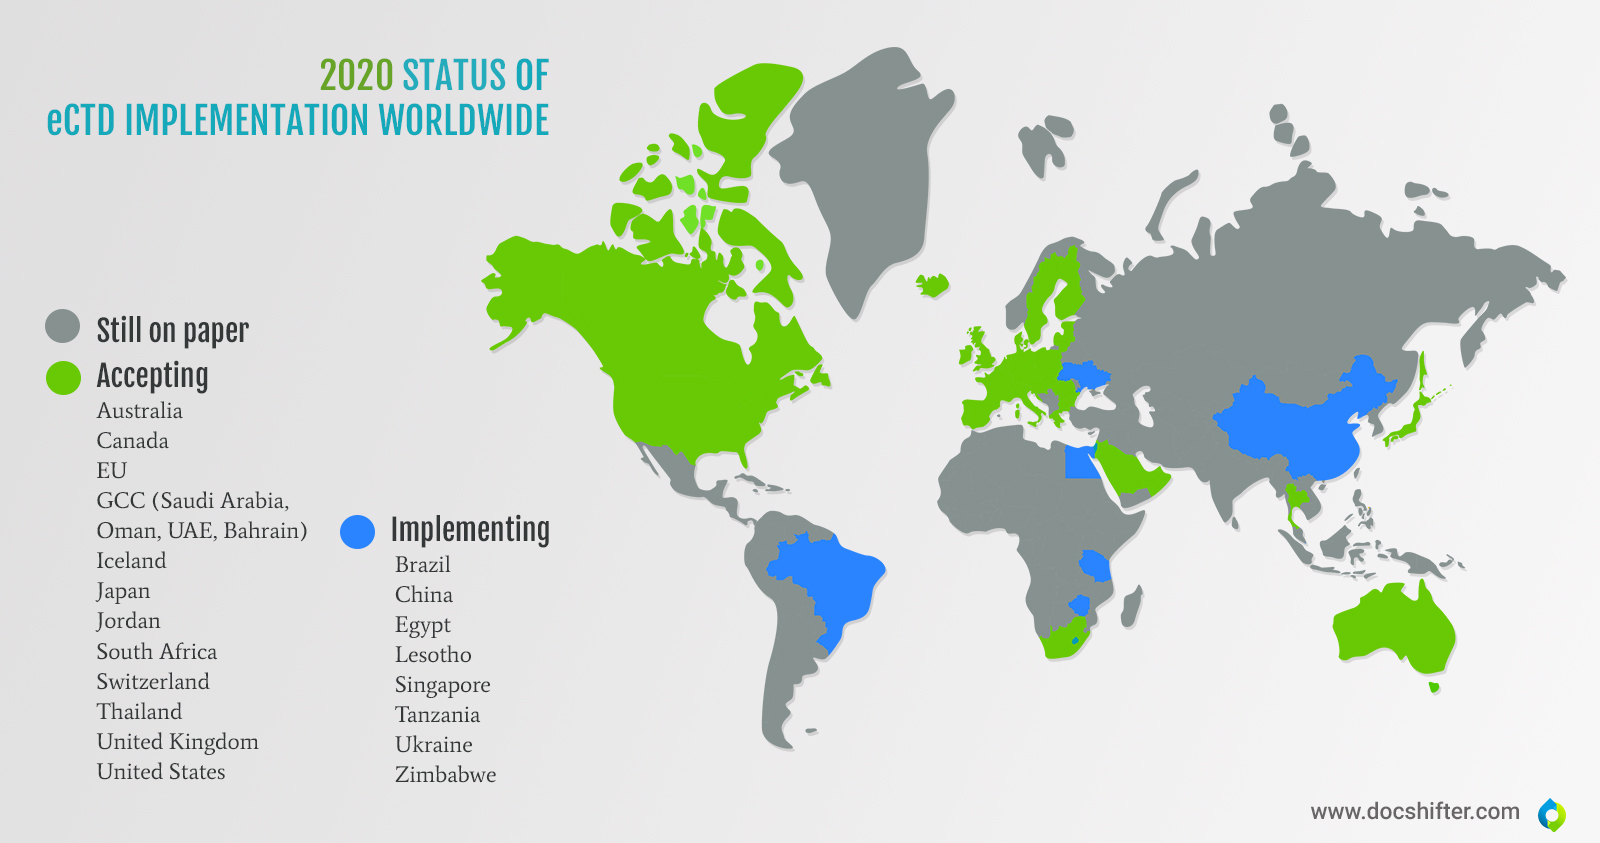 ectd map - which countries are still submitting on paper, and which electronically? | DocShifter